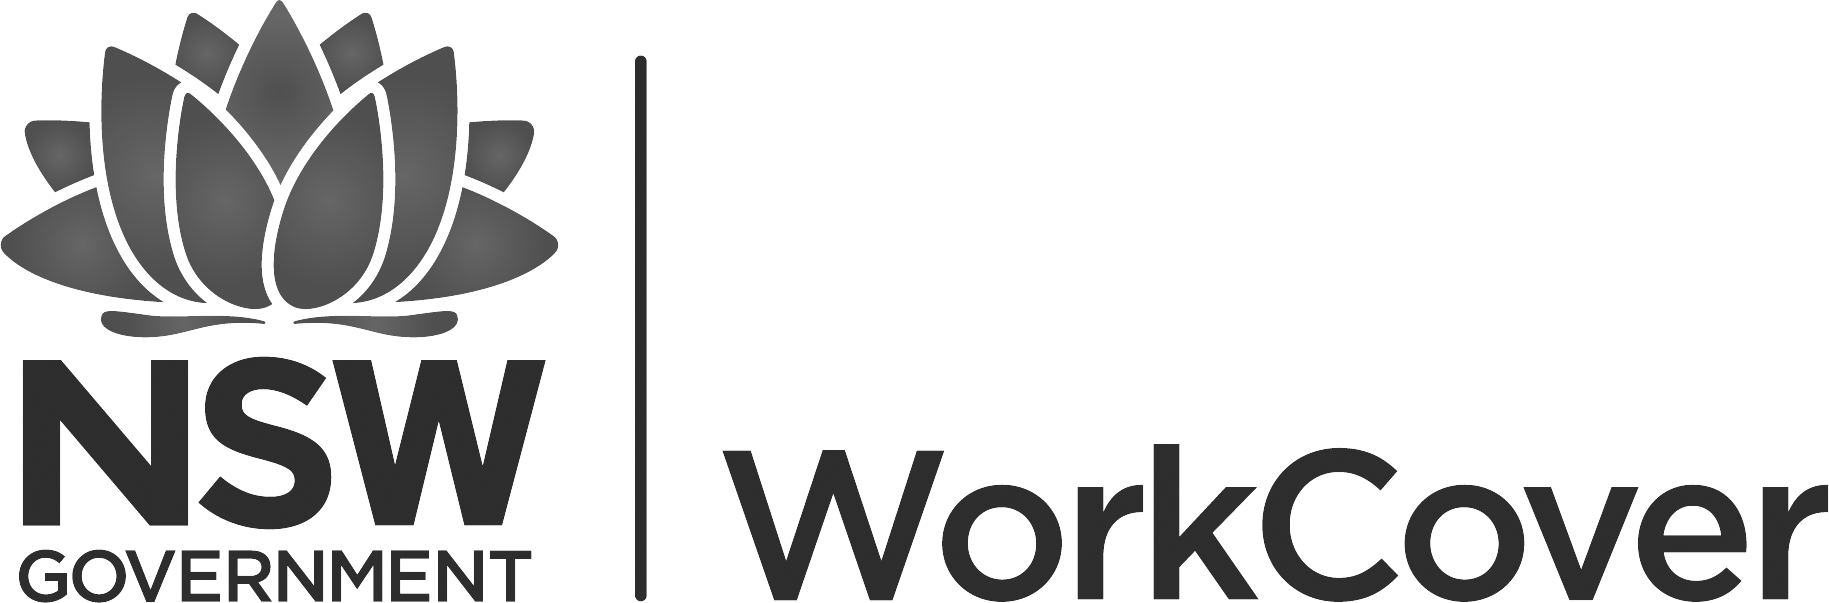 New South Wales Government Workcover